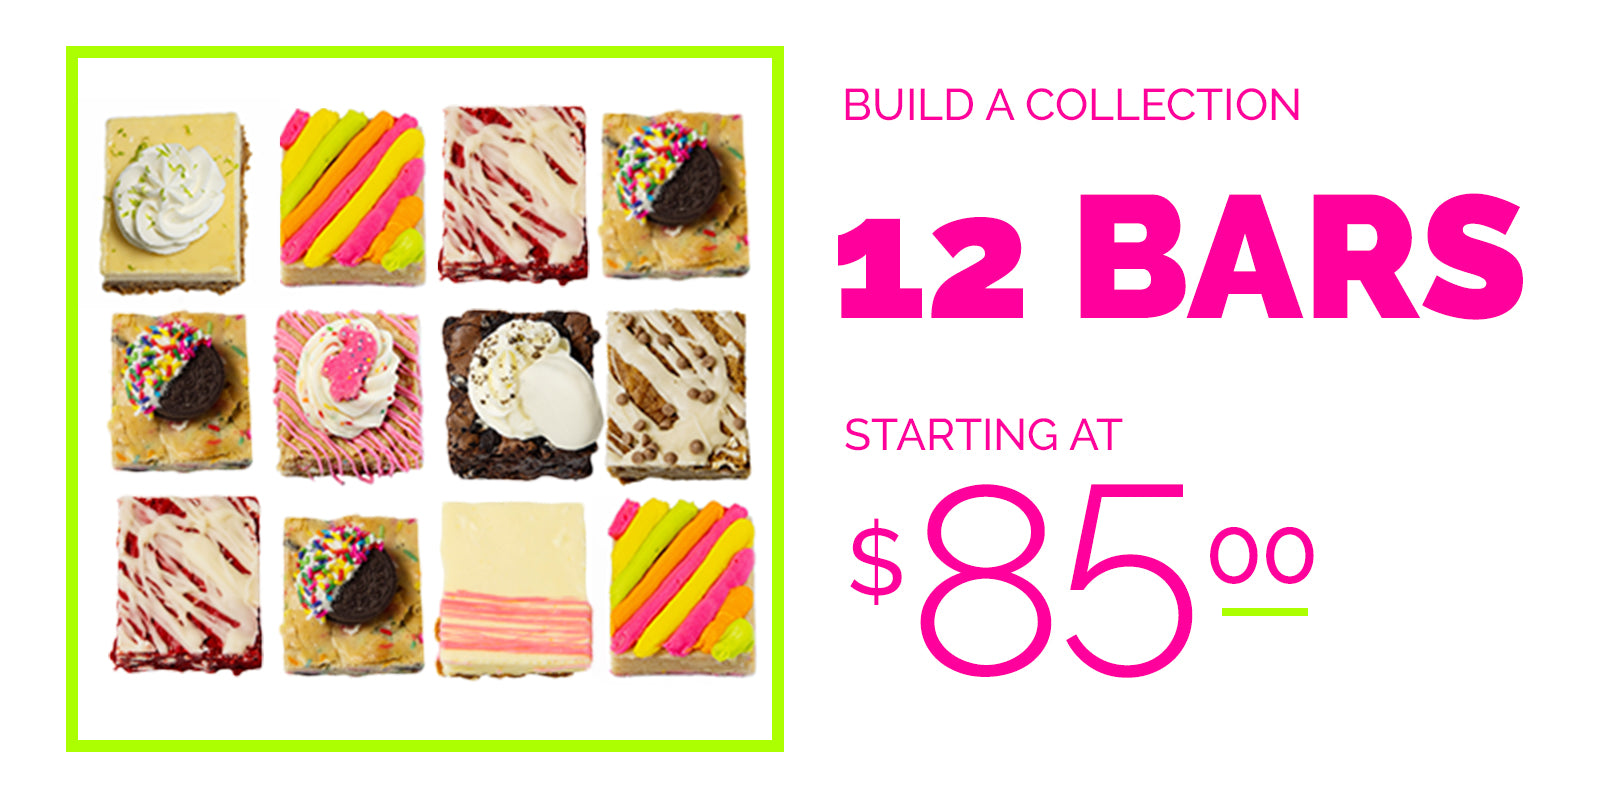 build a collection 12 bars starting at $85